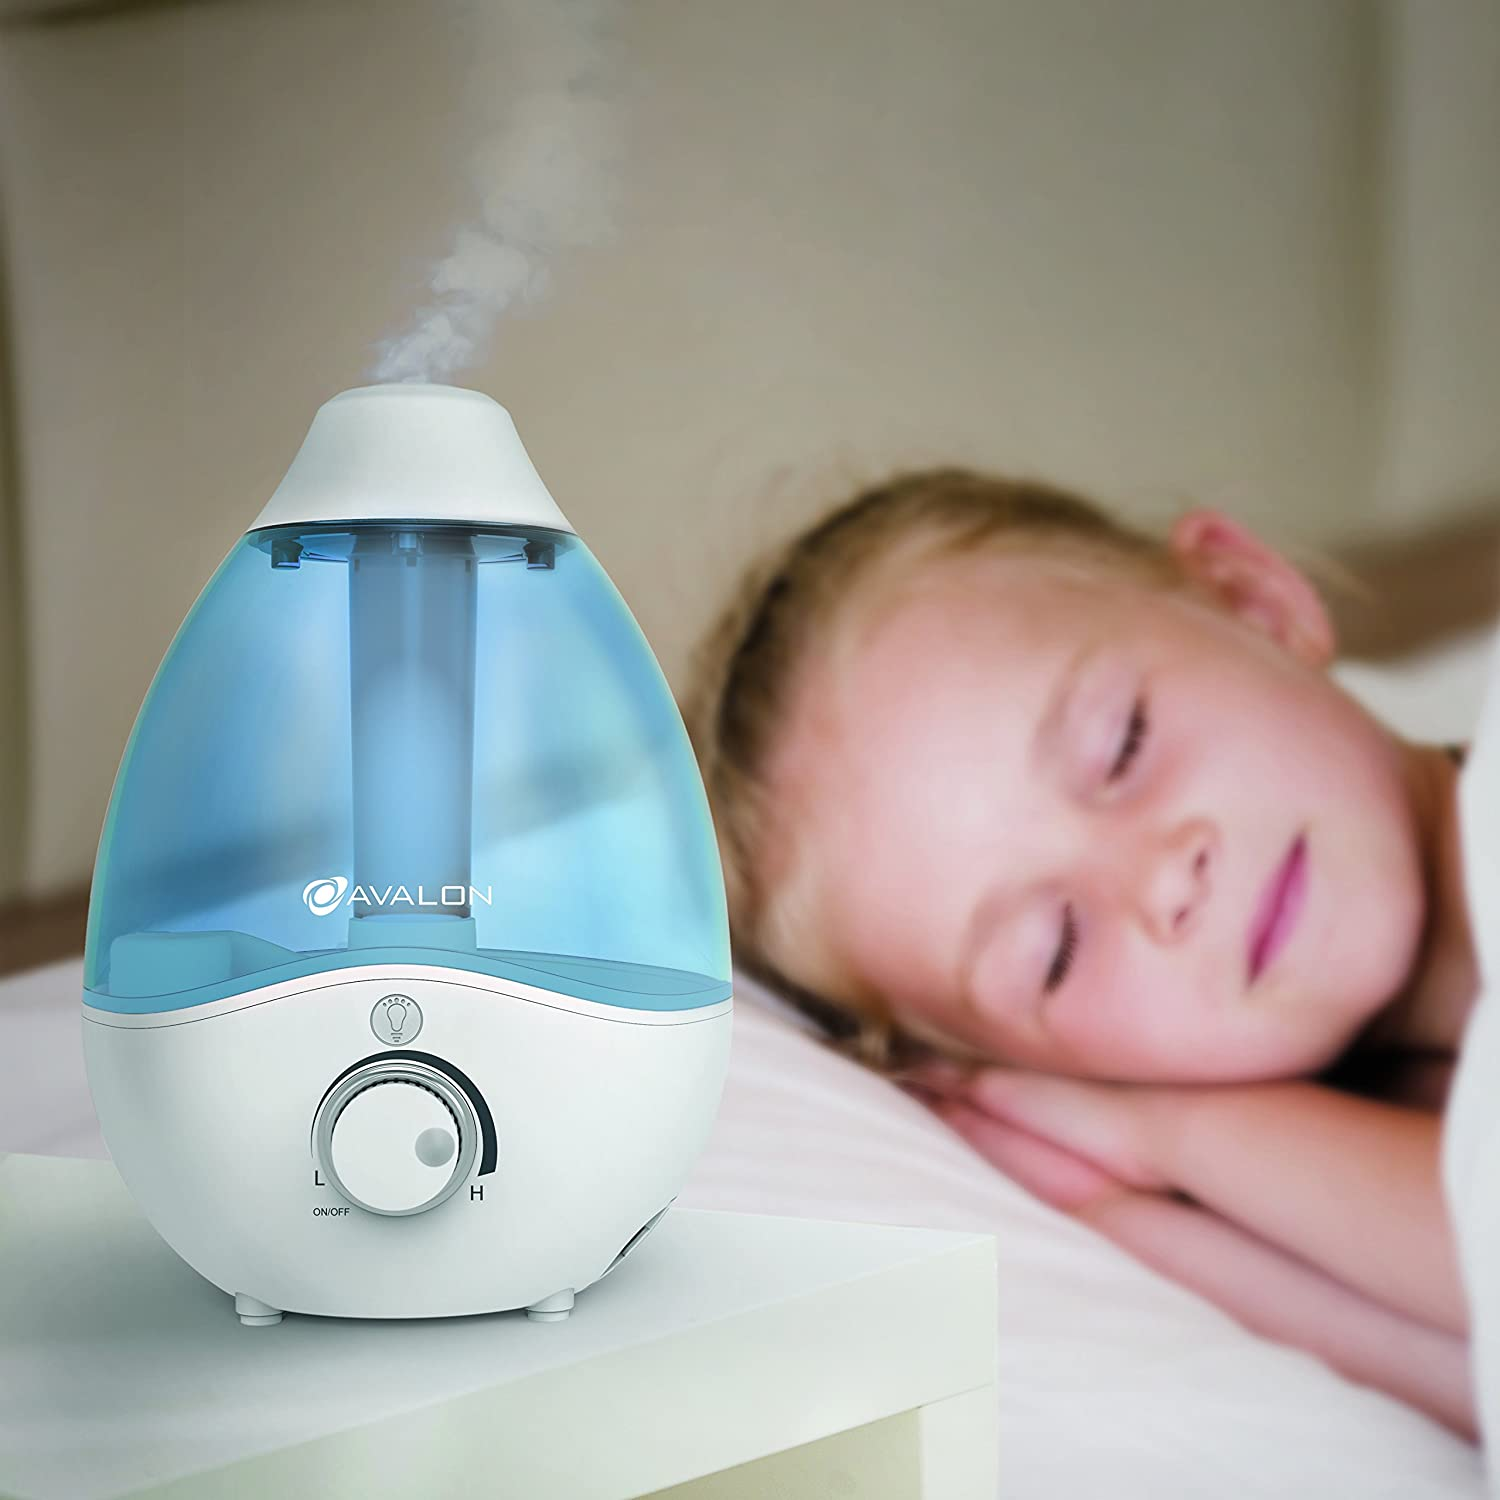 Avalon Premium Cool Mist Humidifier with Aromatherapy Essential Oil Drop Diffuser, with Adjustable LED Night Light, Ultrasonic Pure Silent Technology,